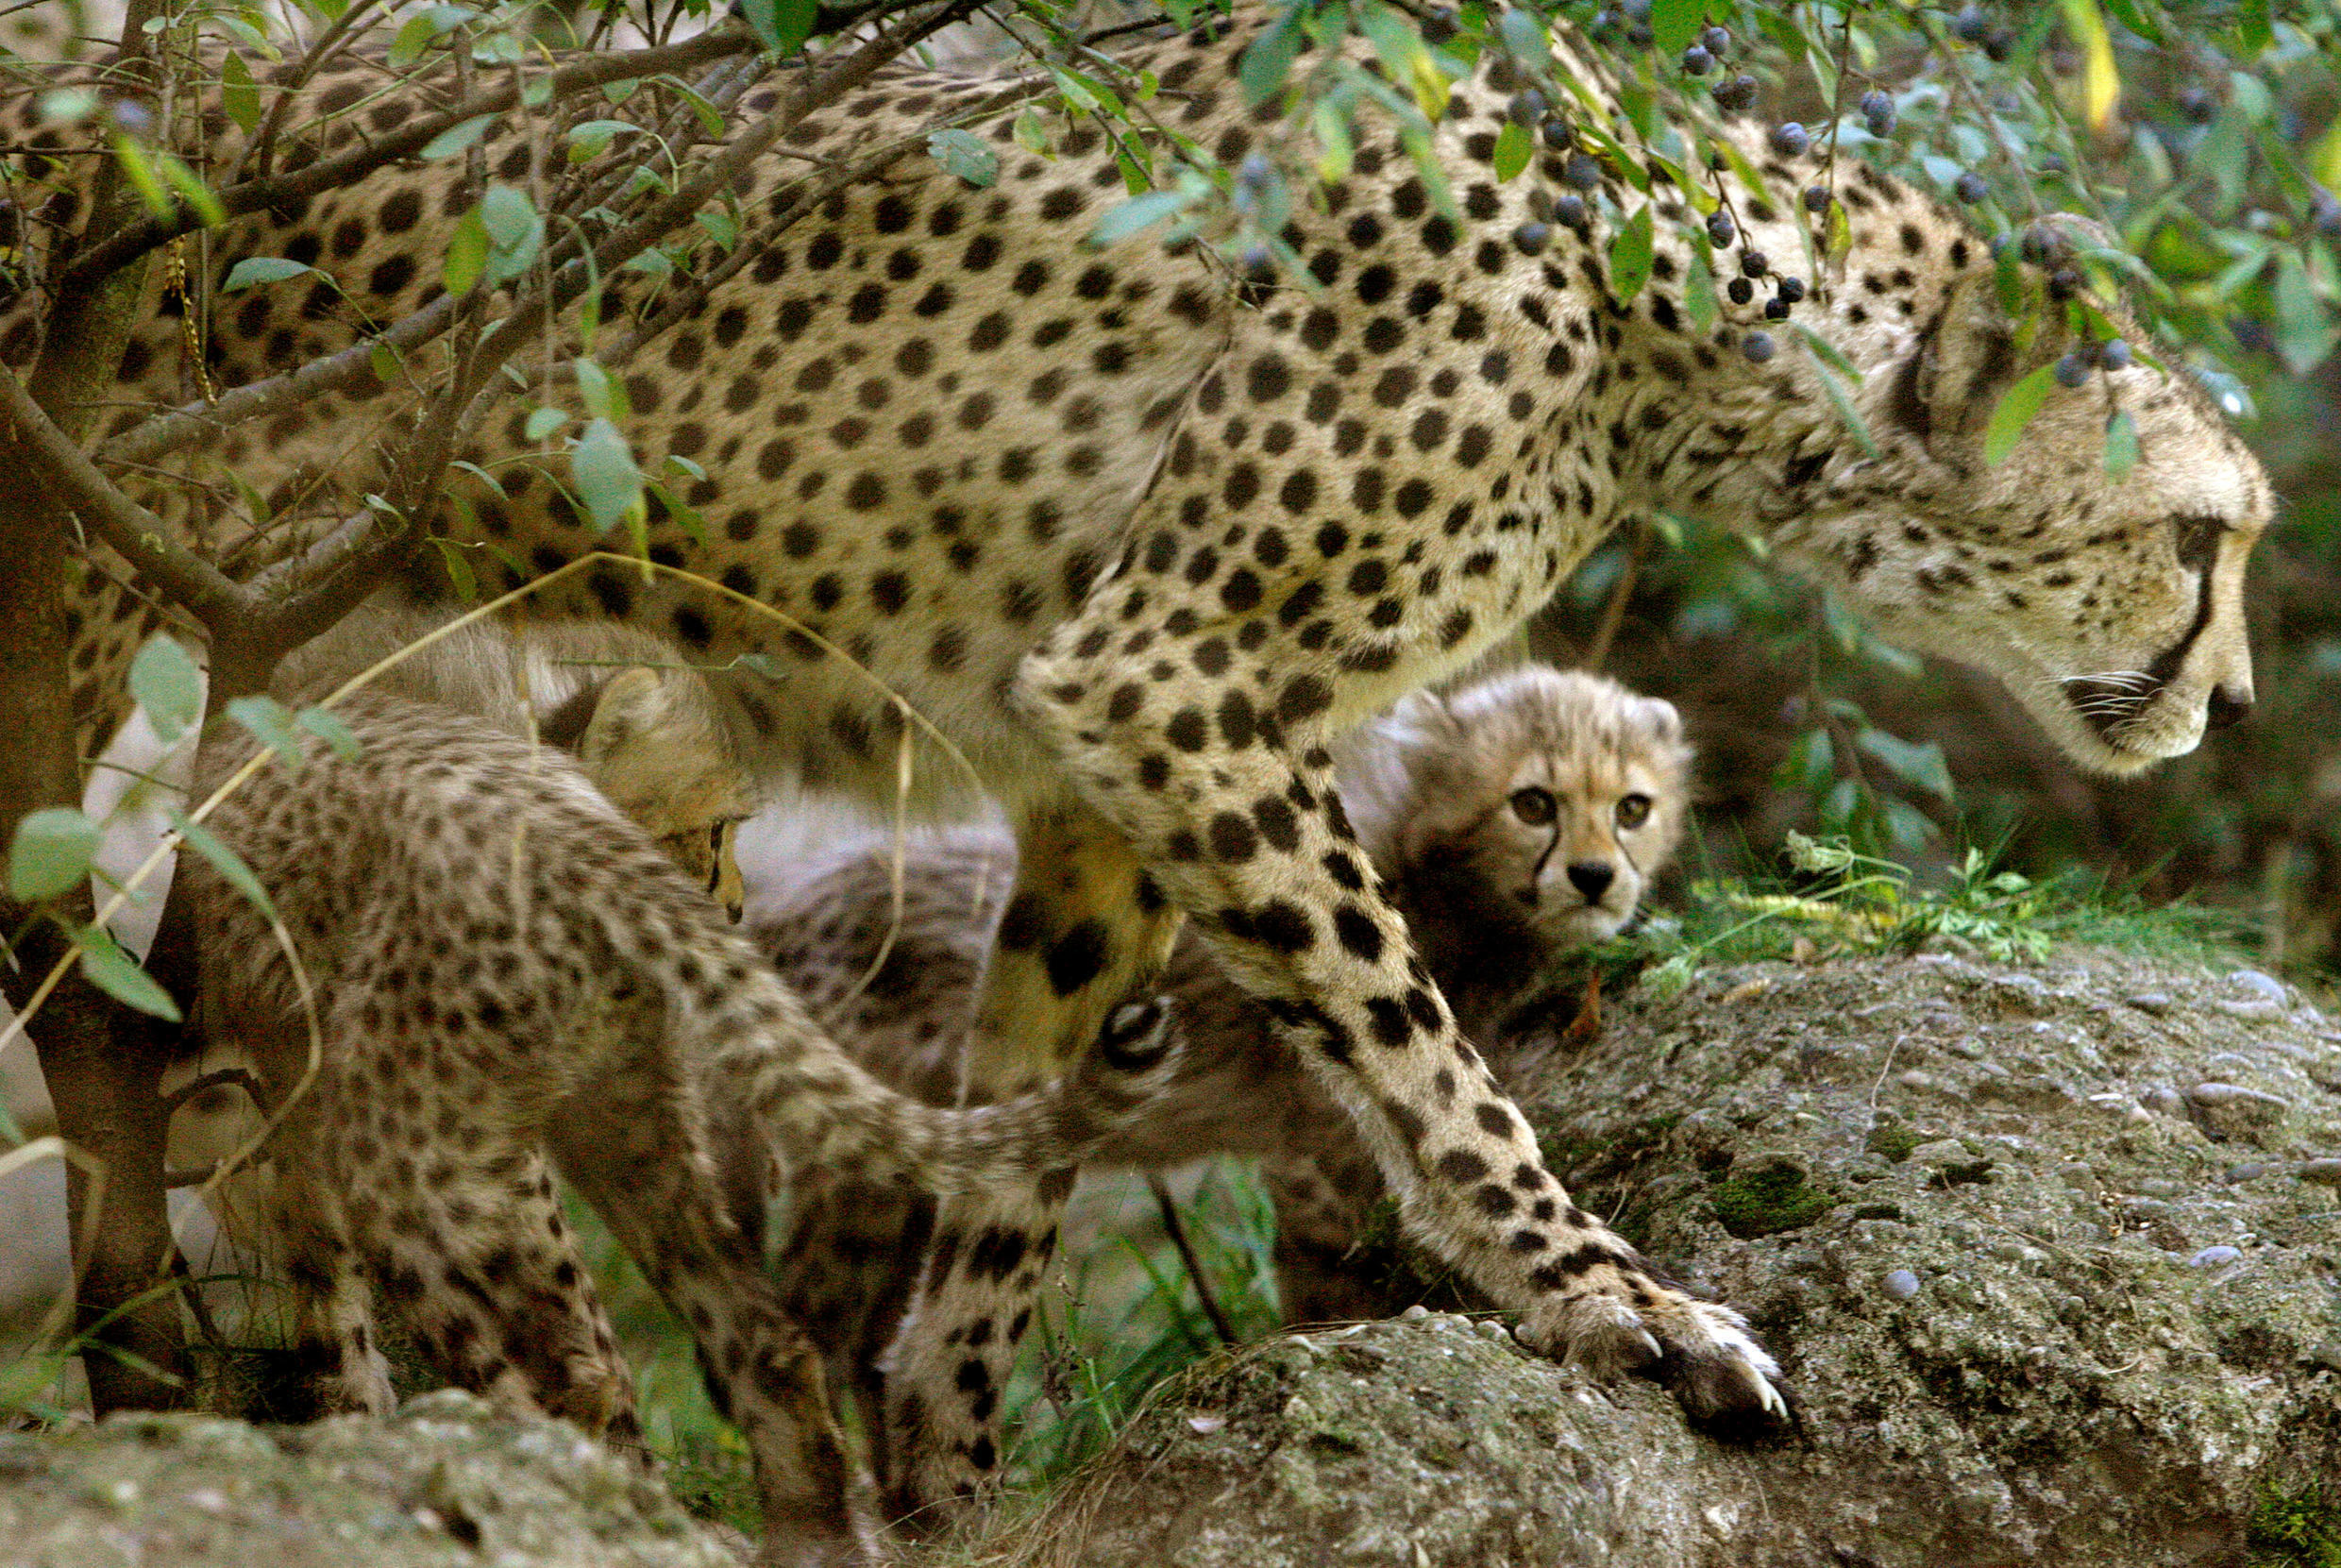 Two cheetah cubs and their mother at an enclosure at the zoo in Basel (illustration).